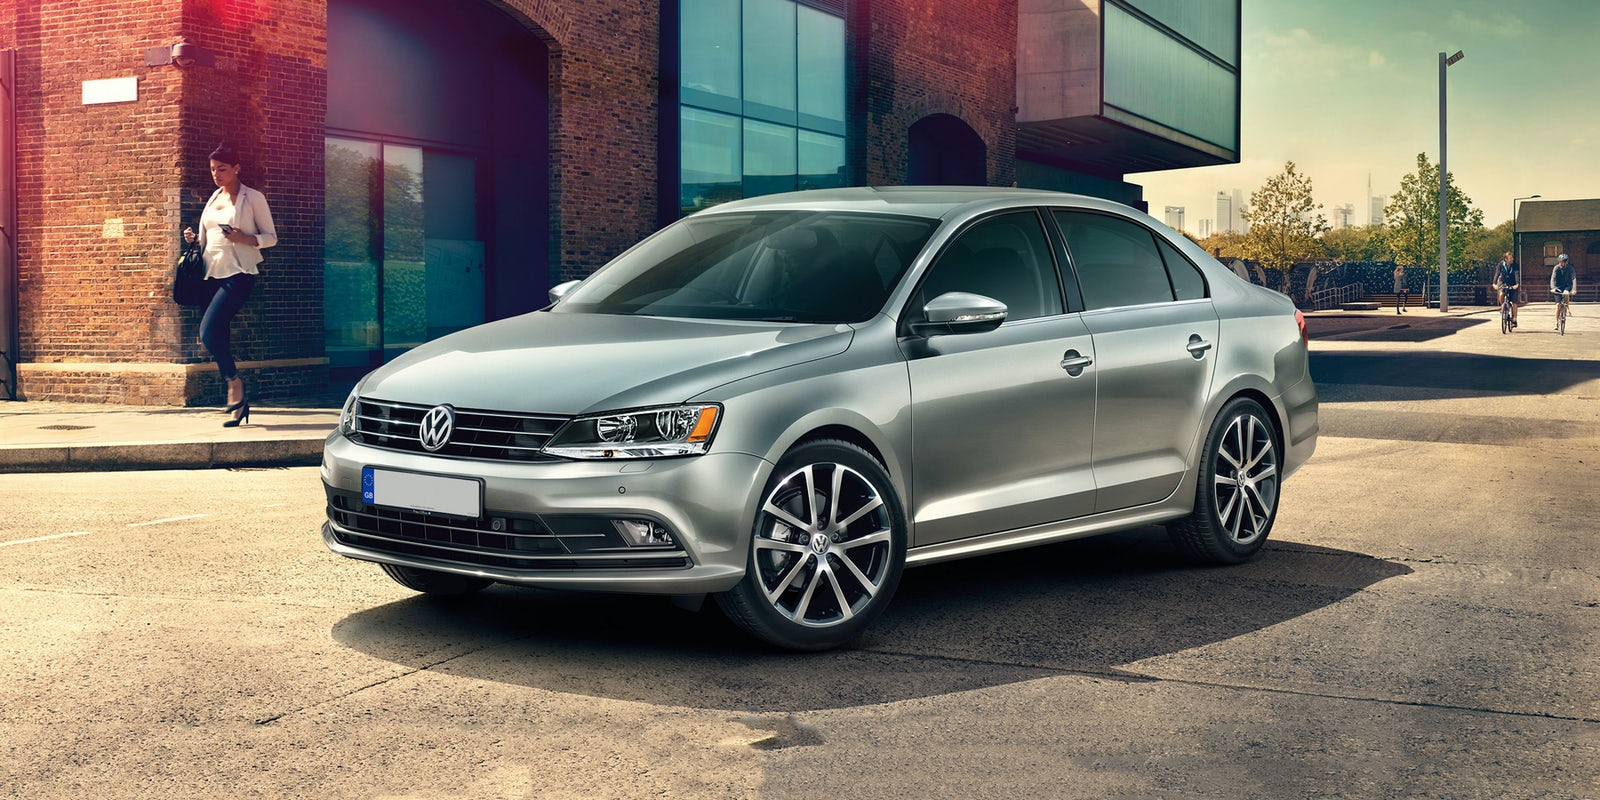 new volkswagen jetta review carwow. Black Bedroom Furniture Sets. Home Design Ideas